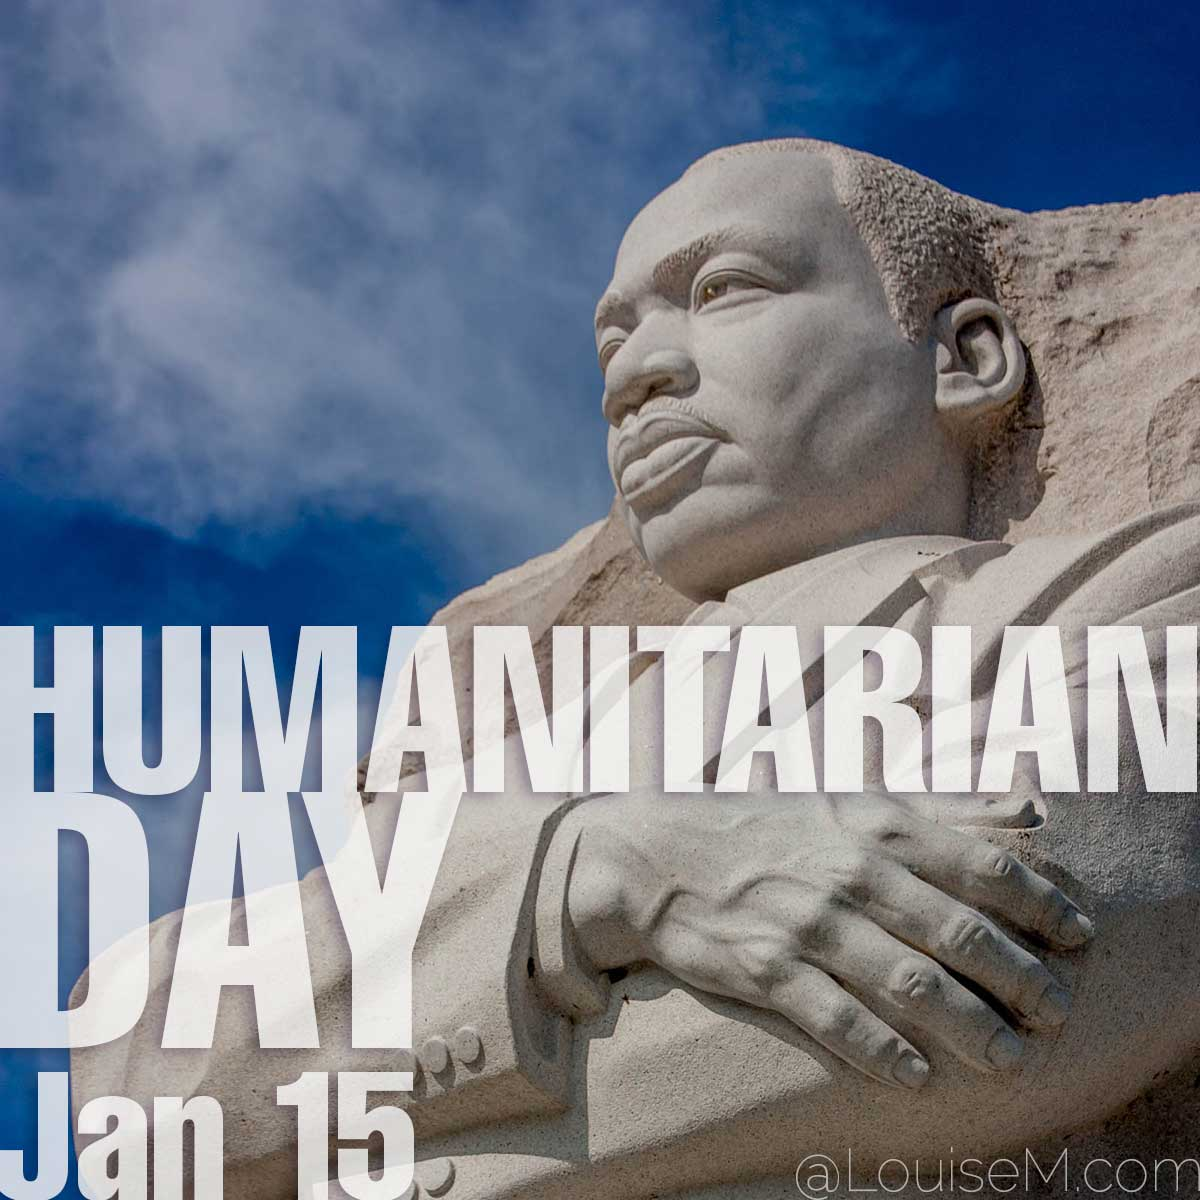 Humanitarian Day text on photo of MLK statue.